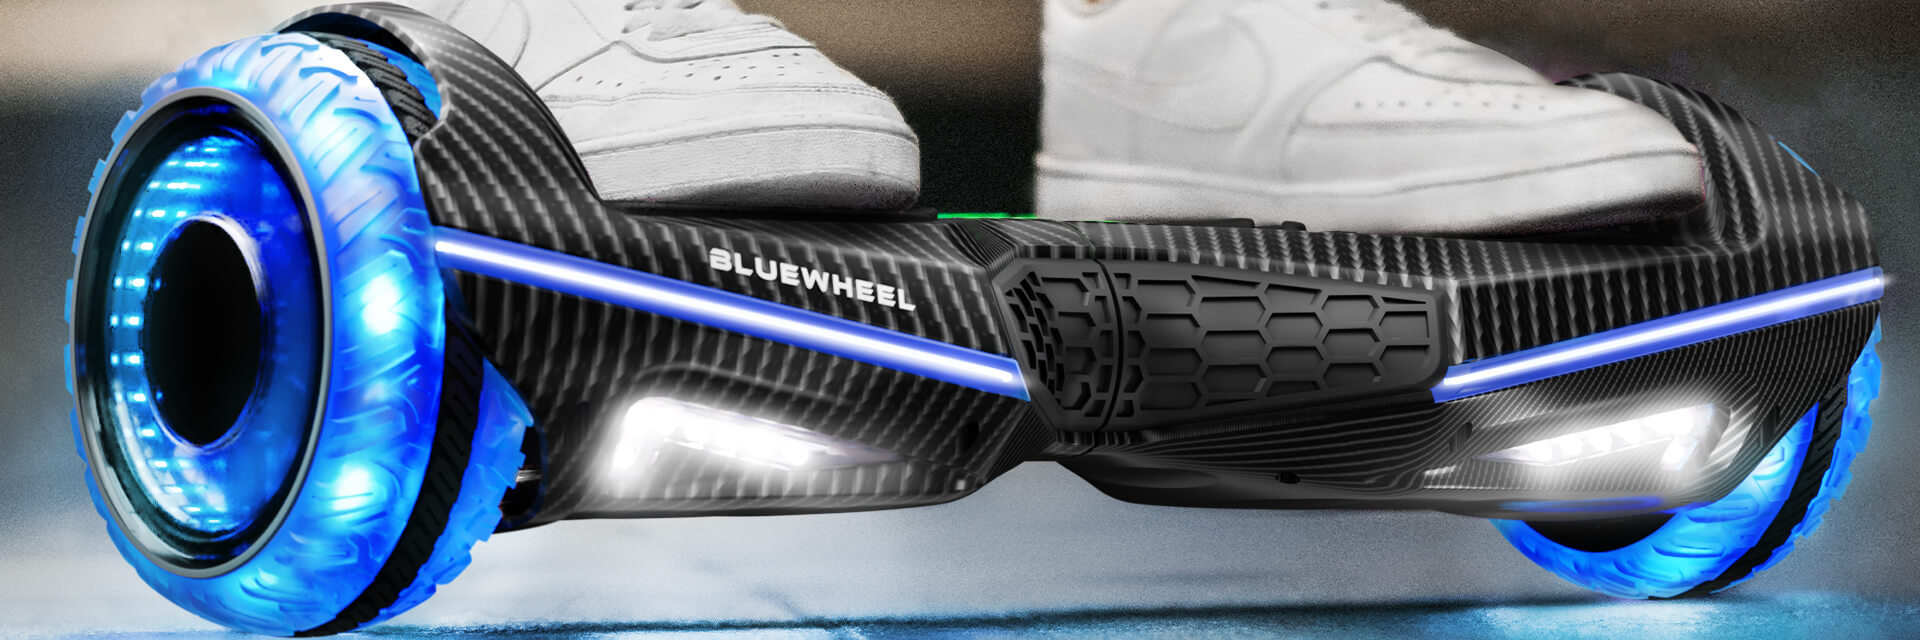 hoverboard-hx360-banner